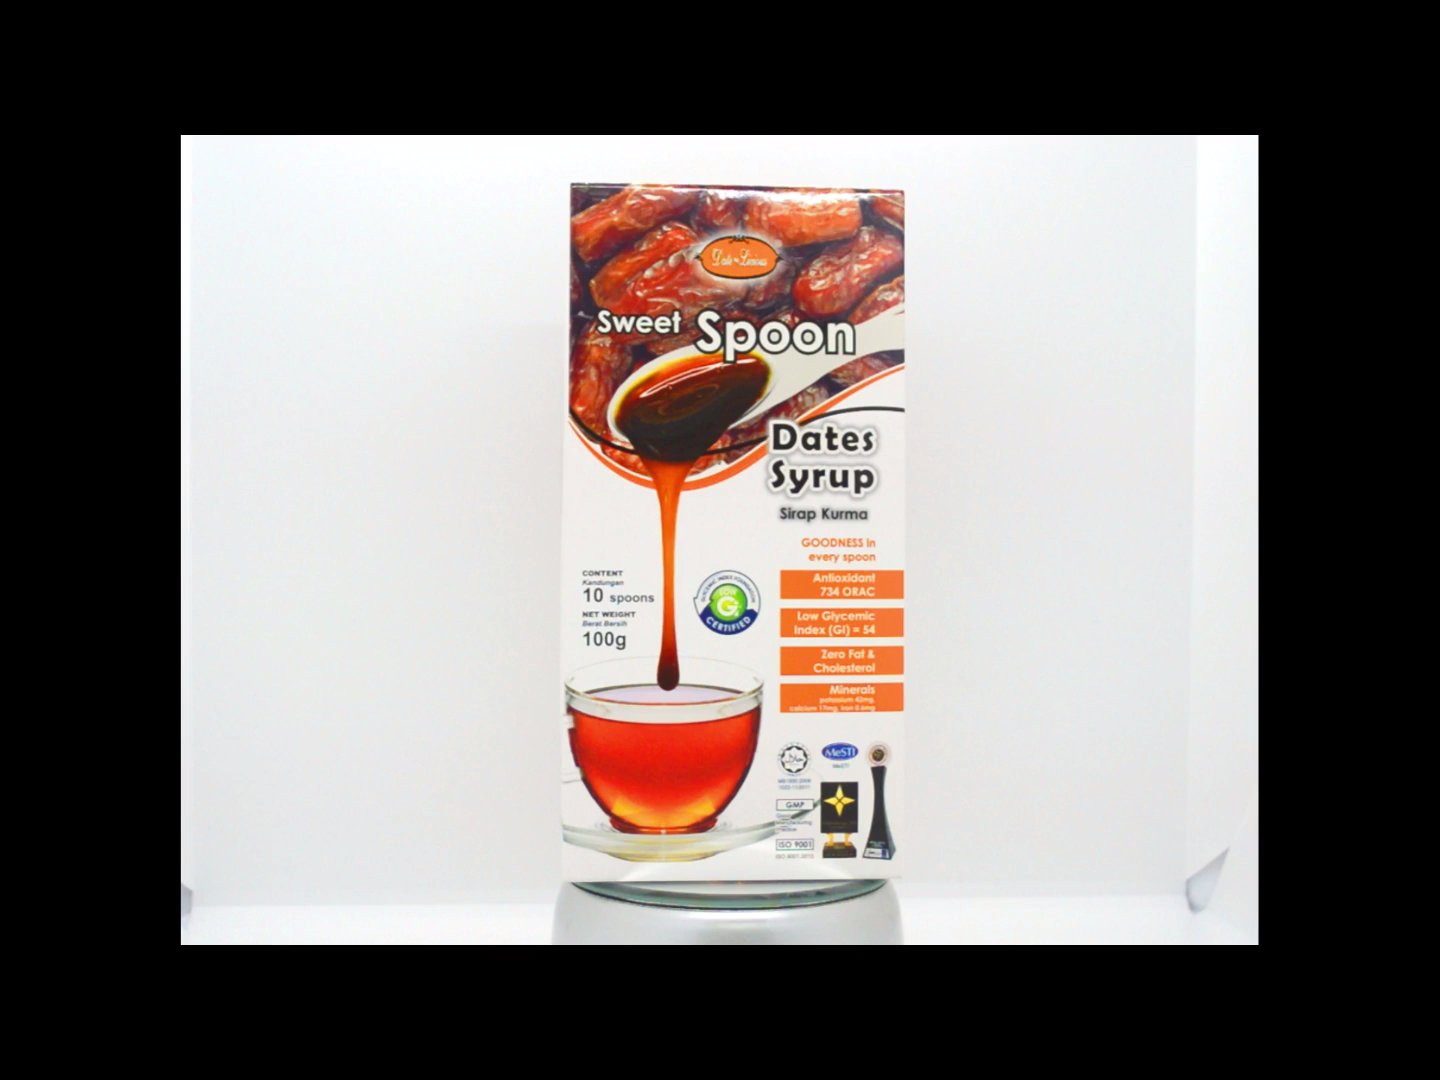 Convenient Package Sugar-Free Halal Date-Licious Sweet Diabetes Syrup In Spoon Packing